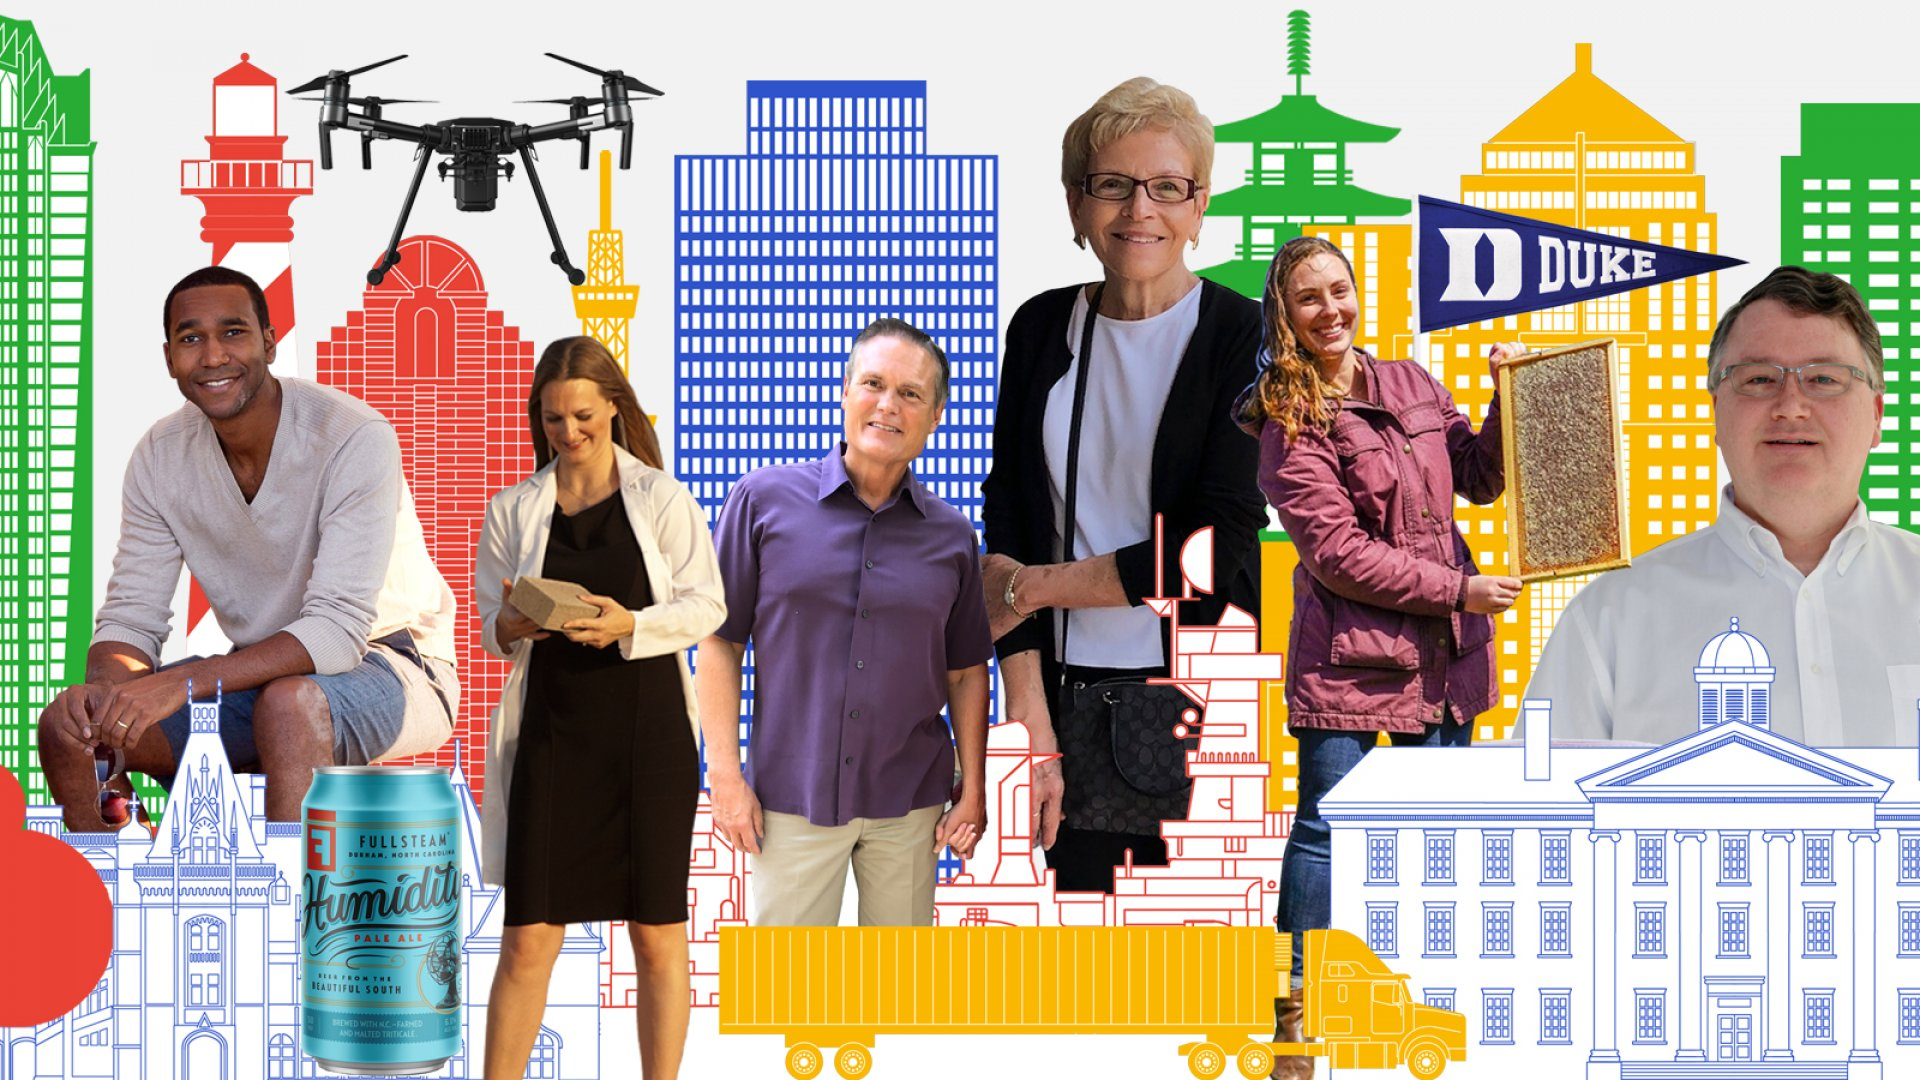 (From left) RewardStock founder Jon Hayes; Fullsteam Brewery Humidity Pale Ale; PrecisionHawk drone; architect Ginger Dosier; entrepreneur David Gardner; investor Jan Davis; Bee Downtown founder Leigh-Kathryn Bonner; Duke University flag; and Spiffy CEO Scot Wingo.